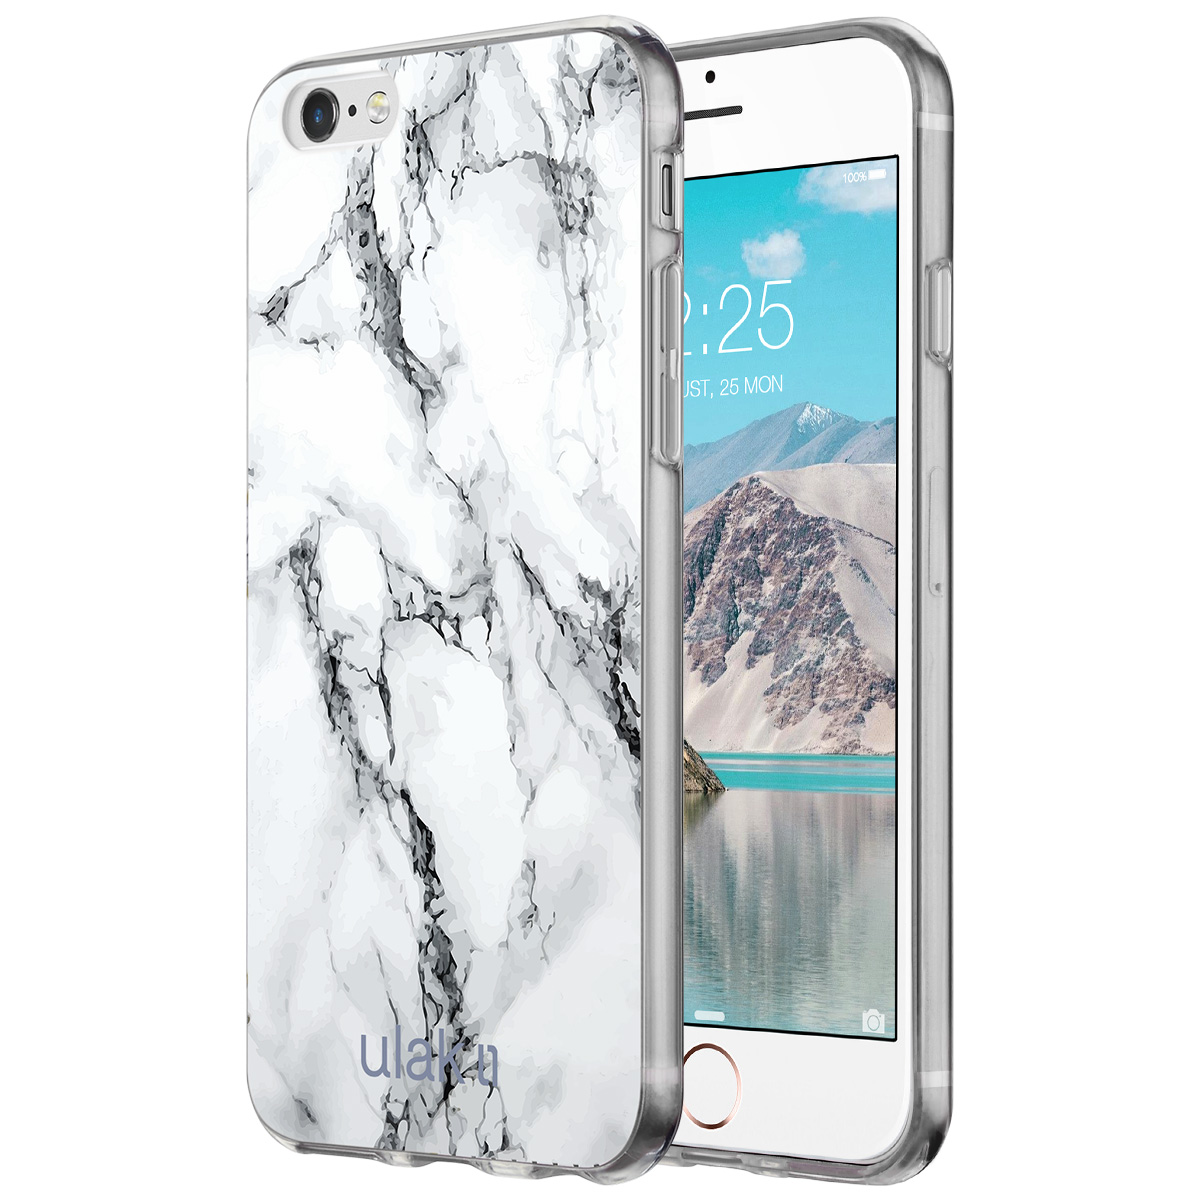 ulak case iphone 6s